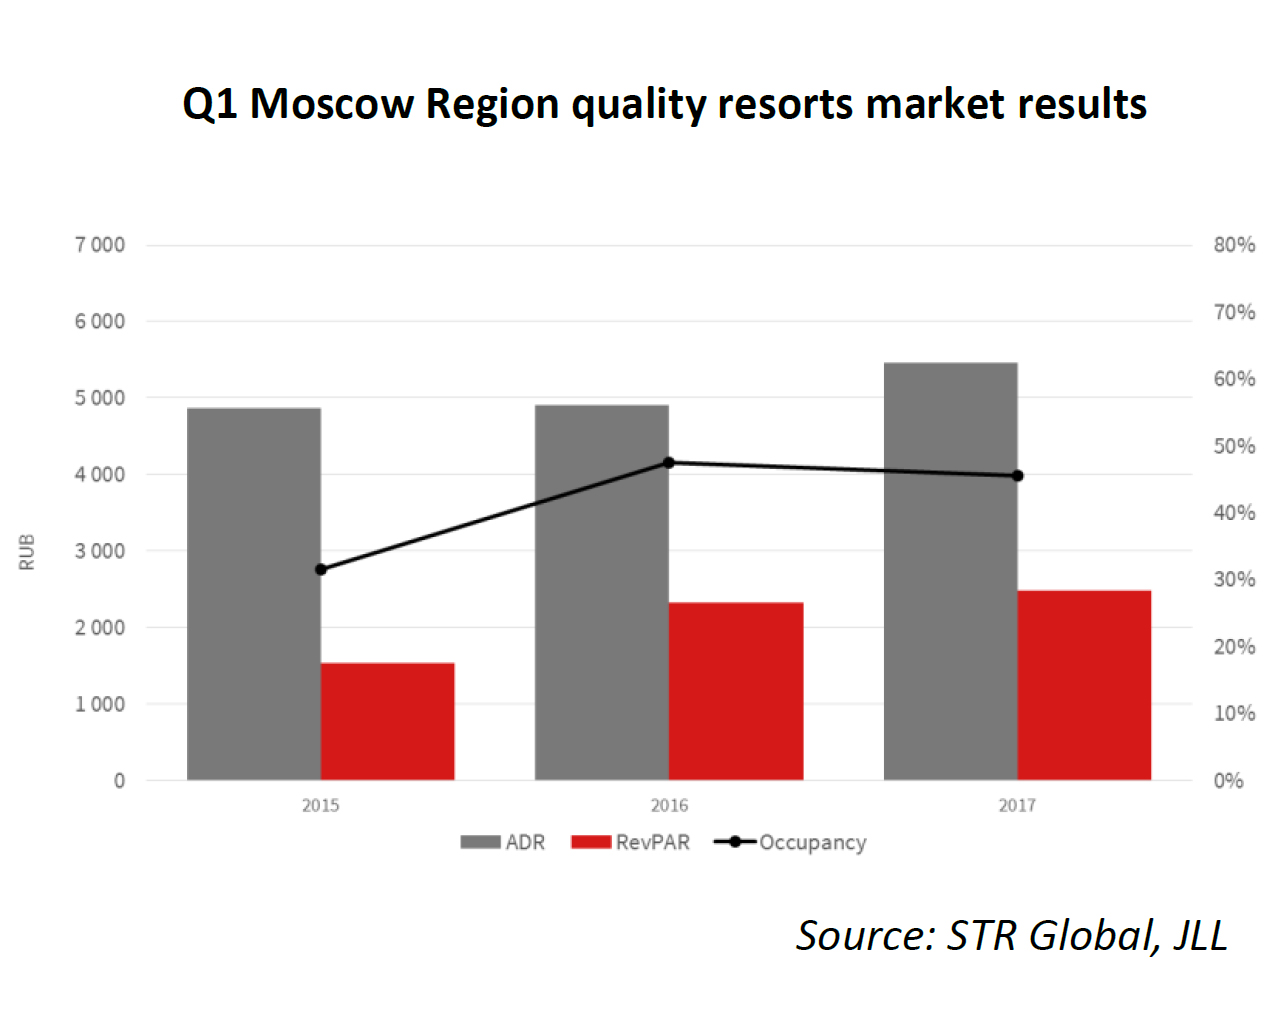 Q1-Moscow-Region-quality-resorts-market-results-2.jpg